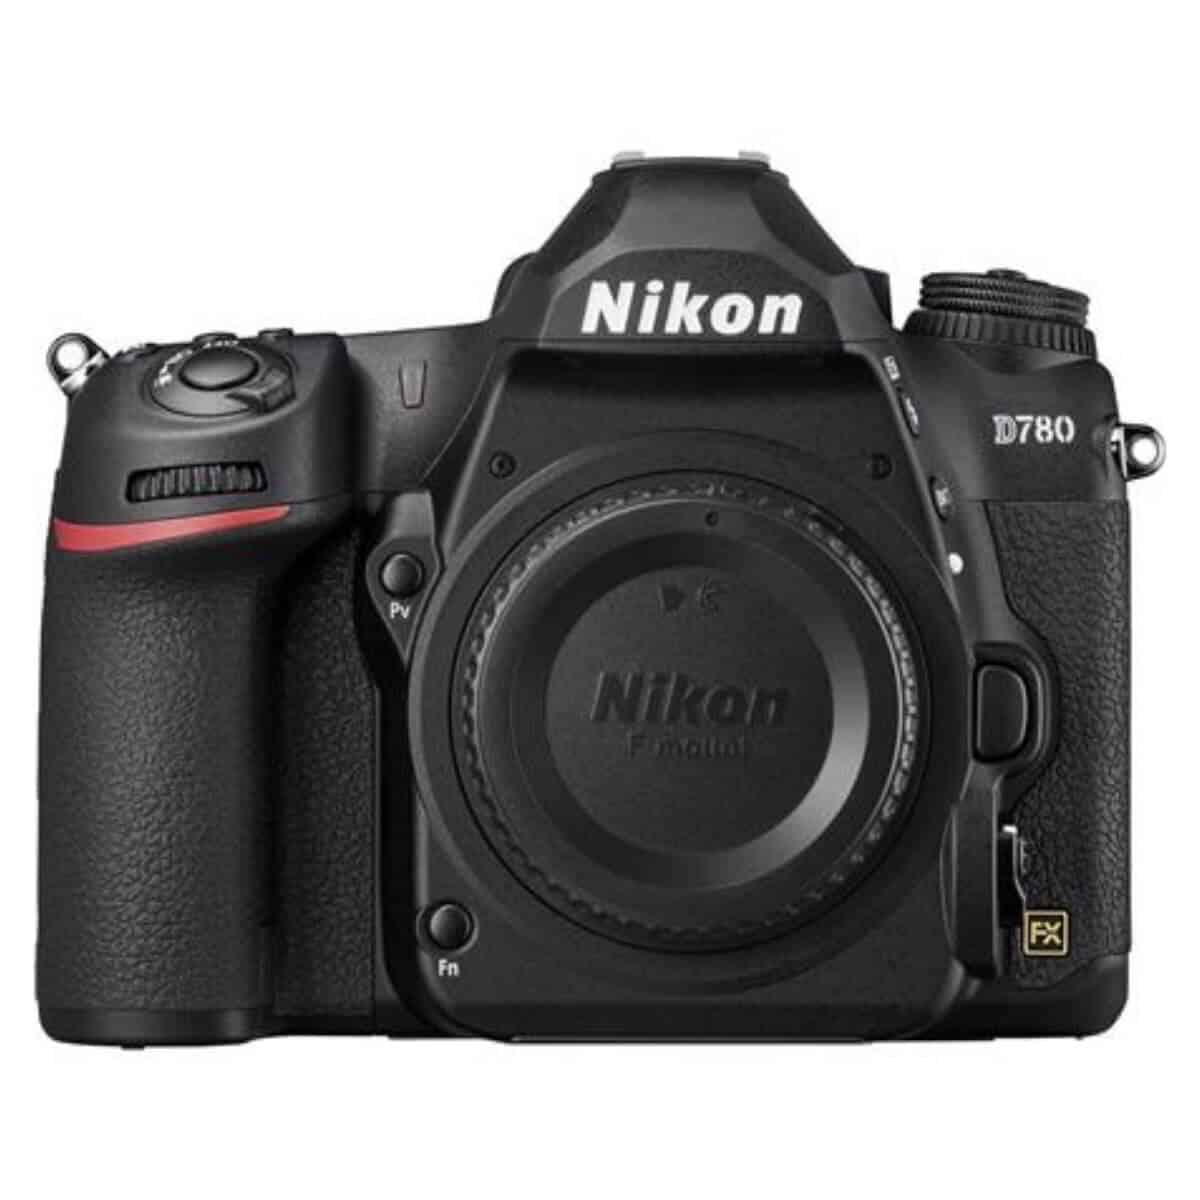 Nikon D780 camera without the lens.